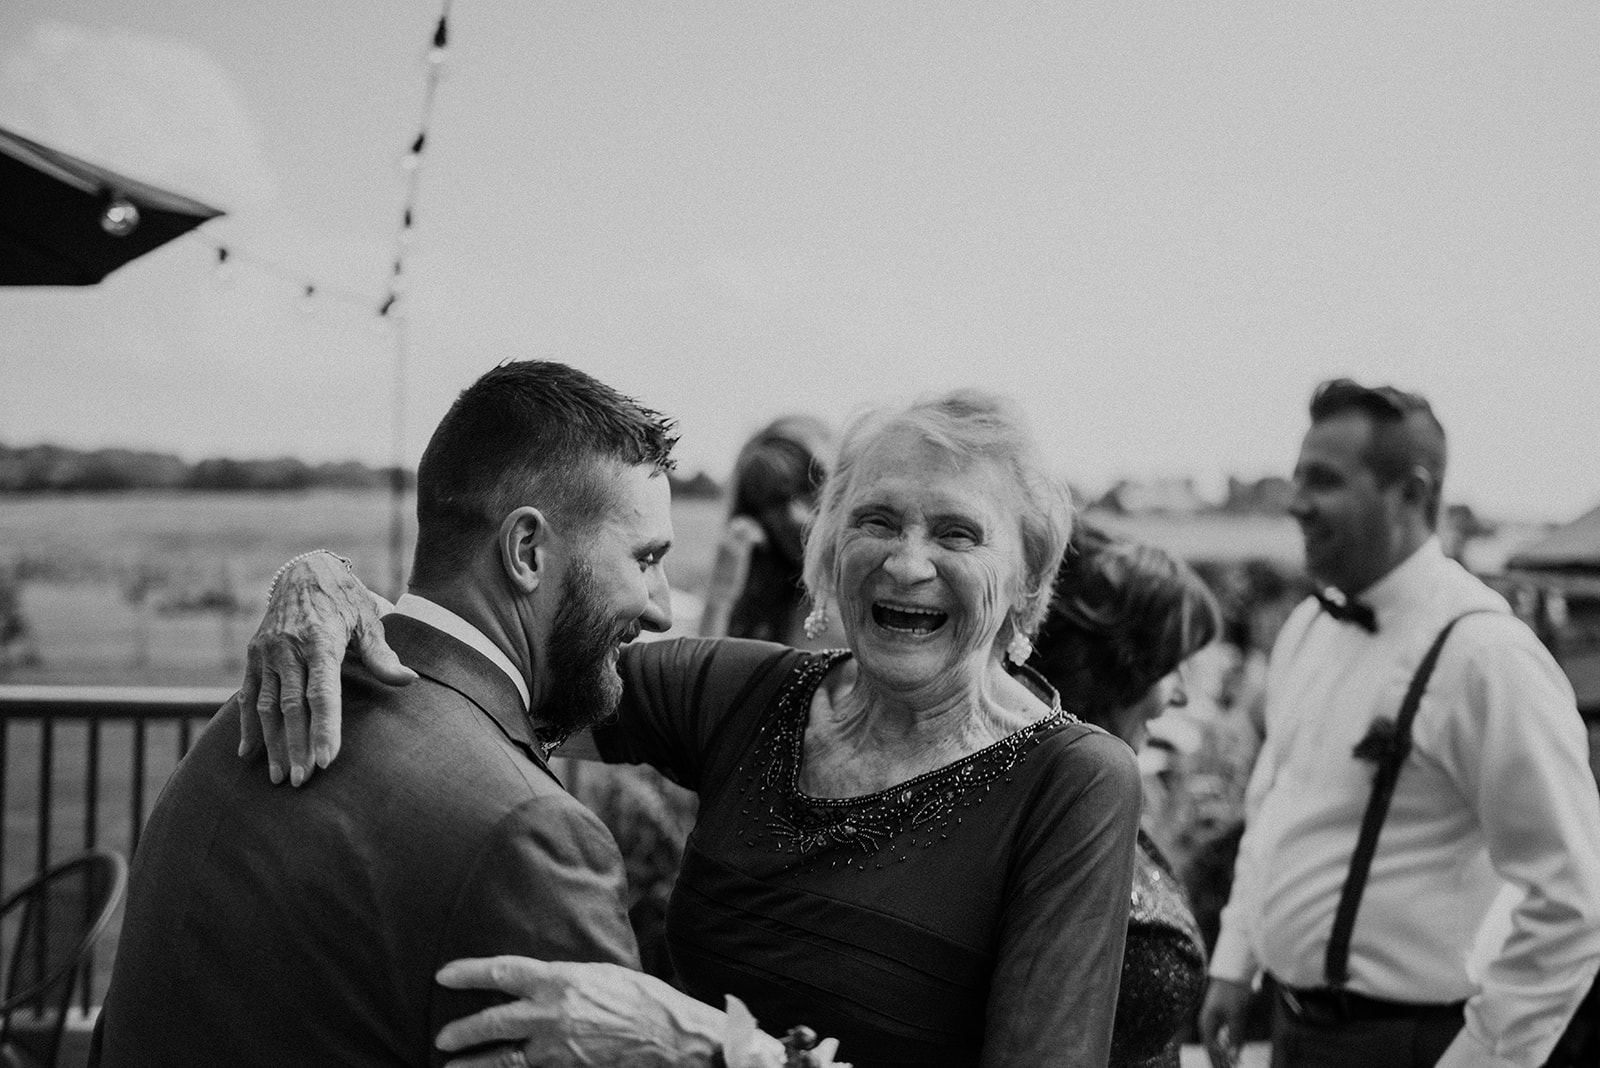 overthevineswisconsinwedding_0542.jpg